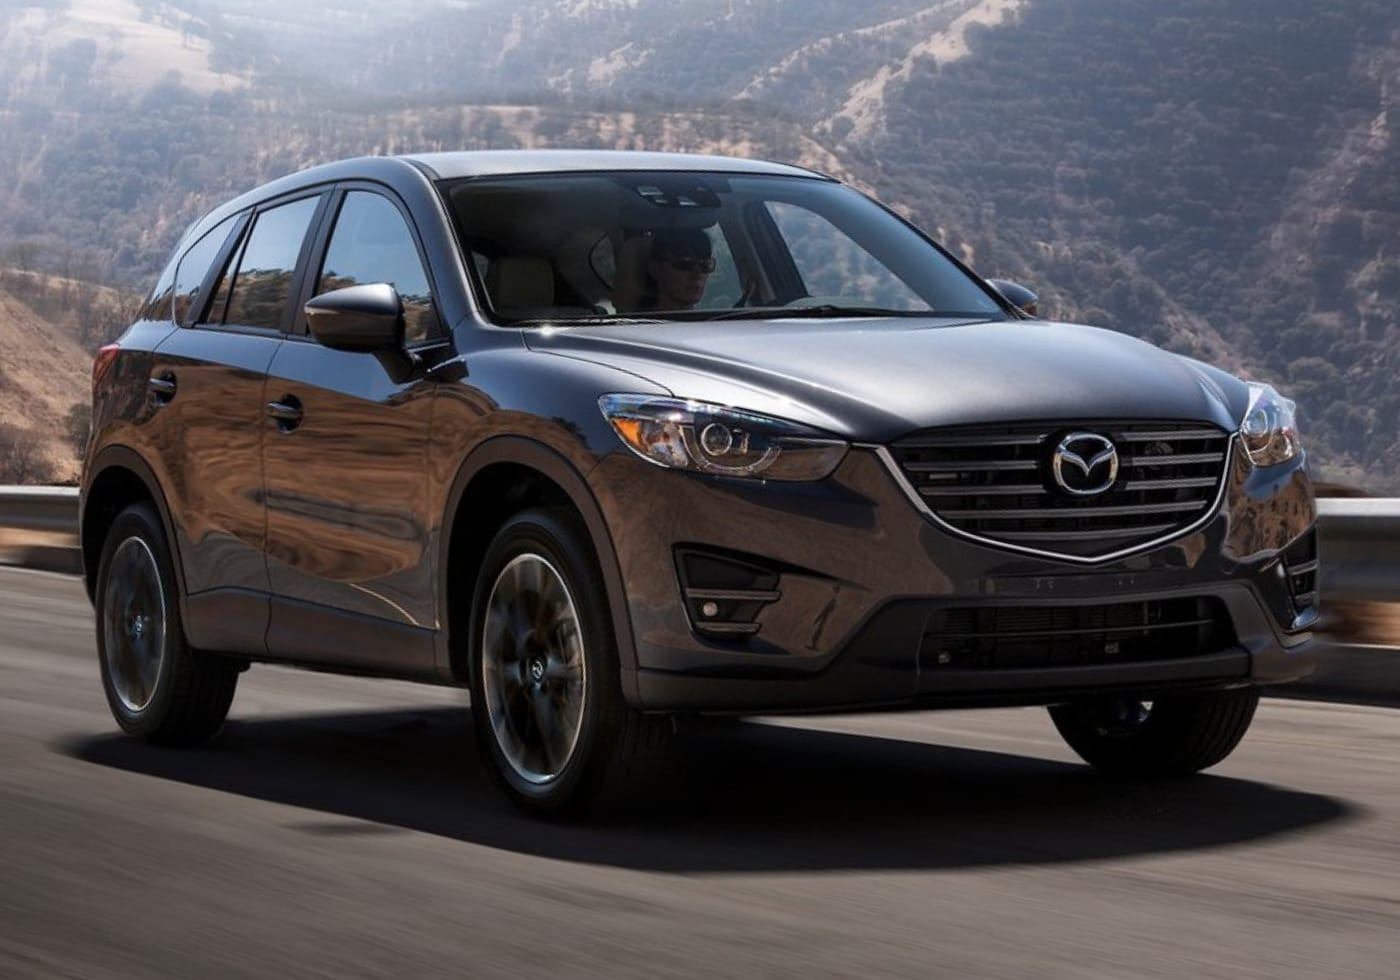 Used 2016 Mazda CX-5 driving on a mountain-side highway